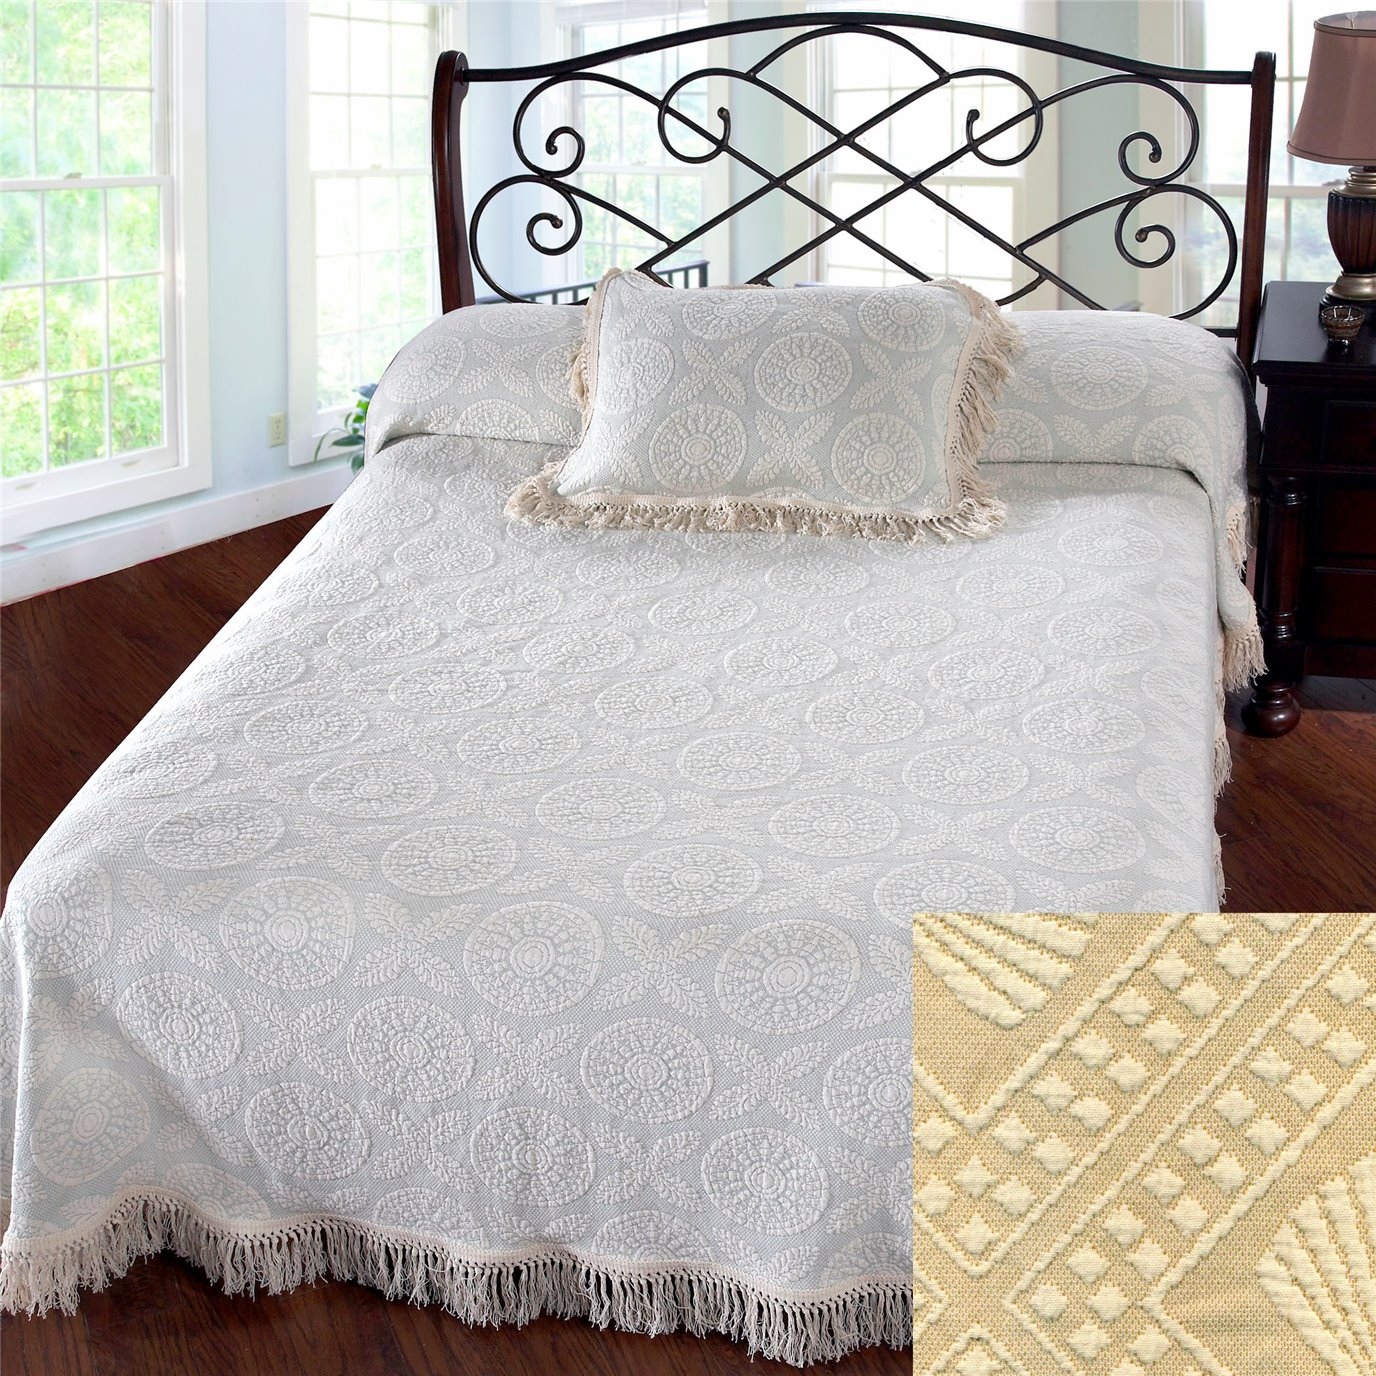 Heirloom Full Linen Bedspread